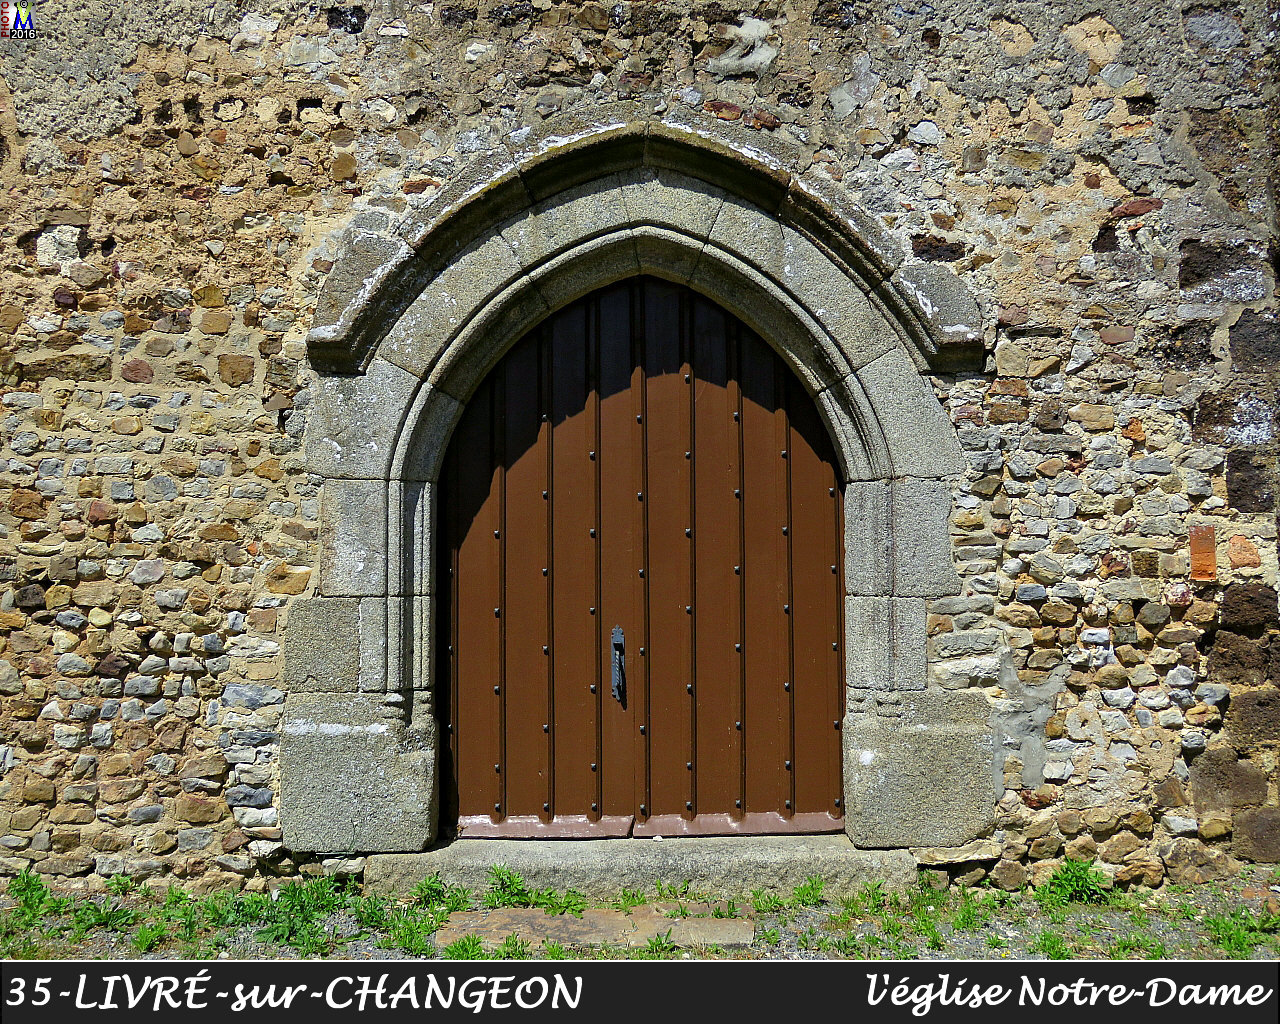 35LIVRE-CHANGEON_eglise_120.jpg